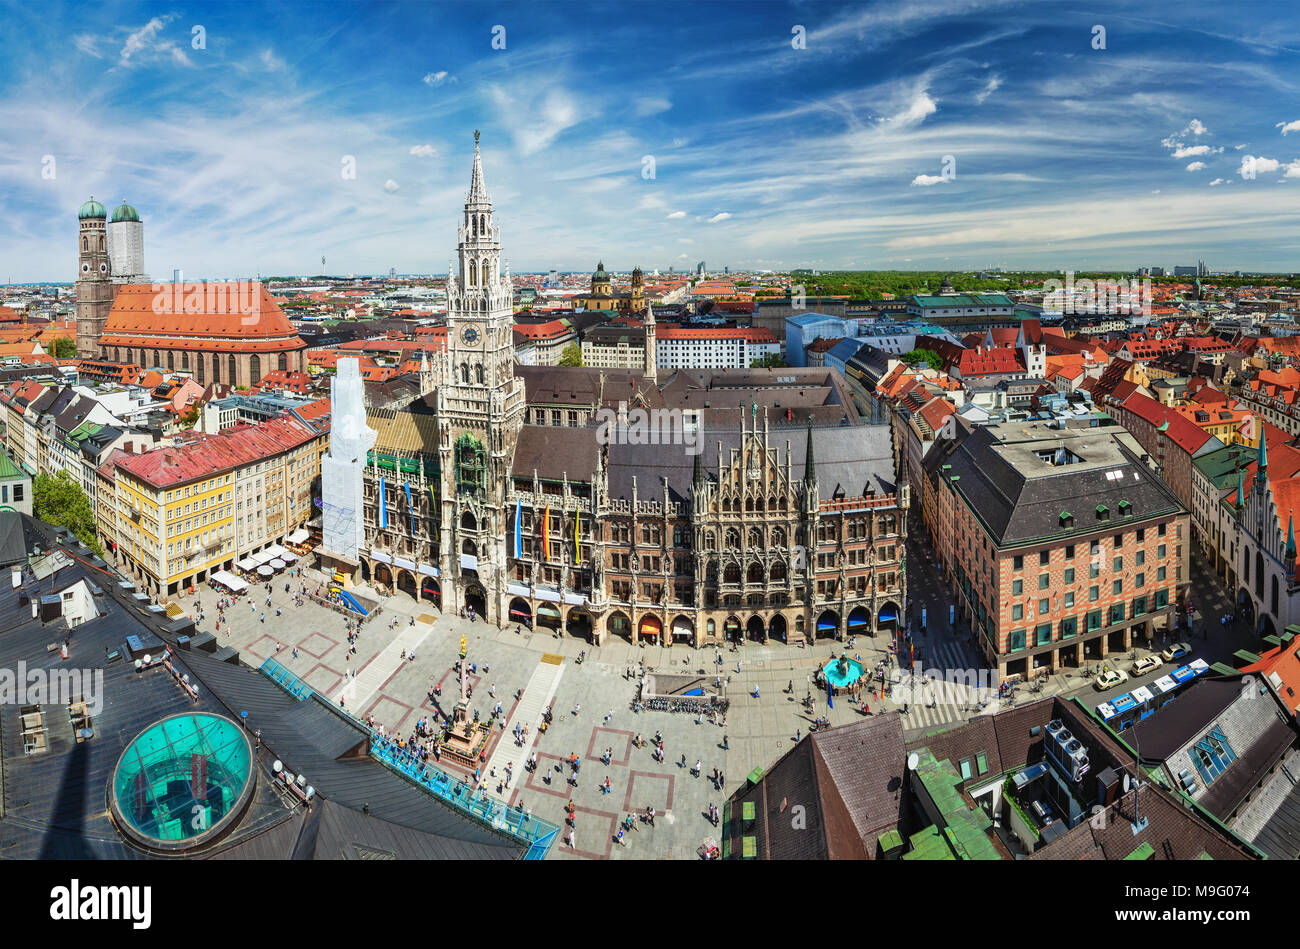 Aerial view of Munich, Germany - Stock Image